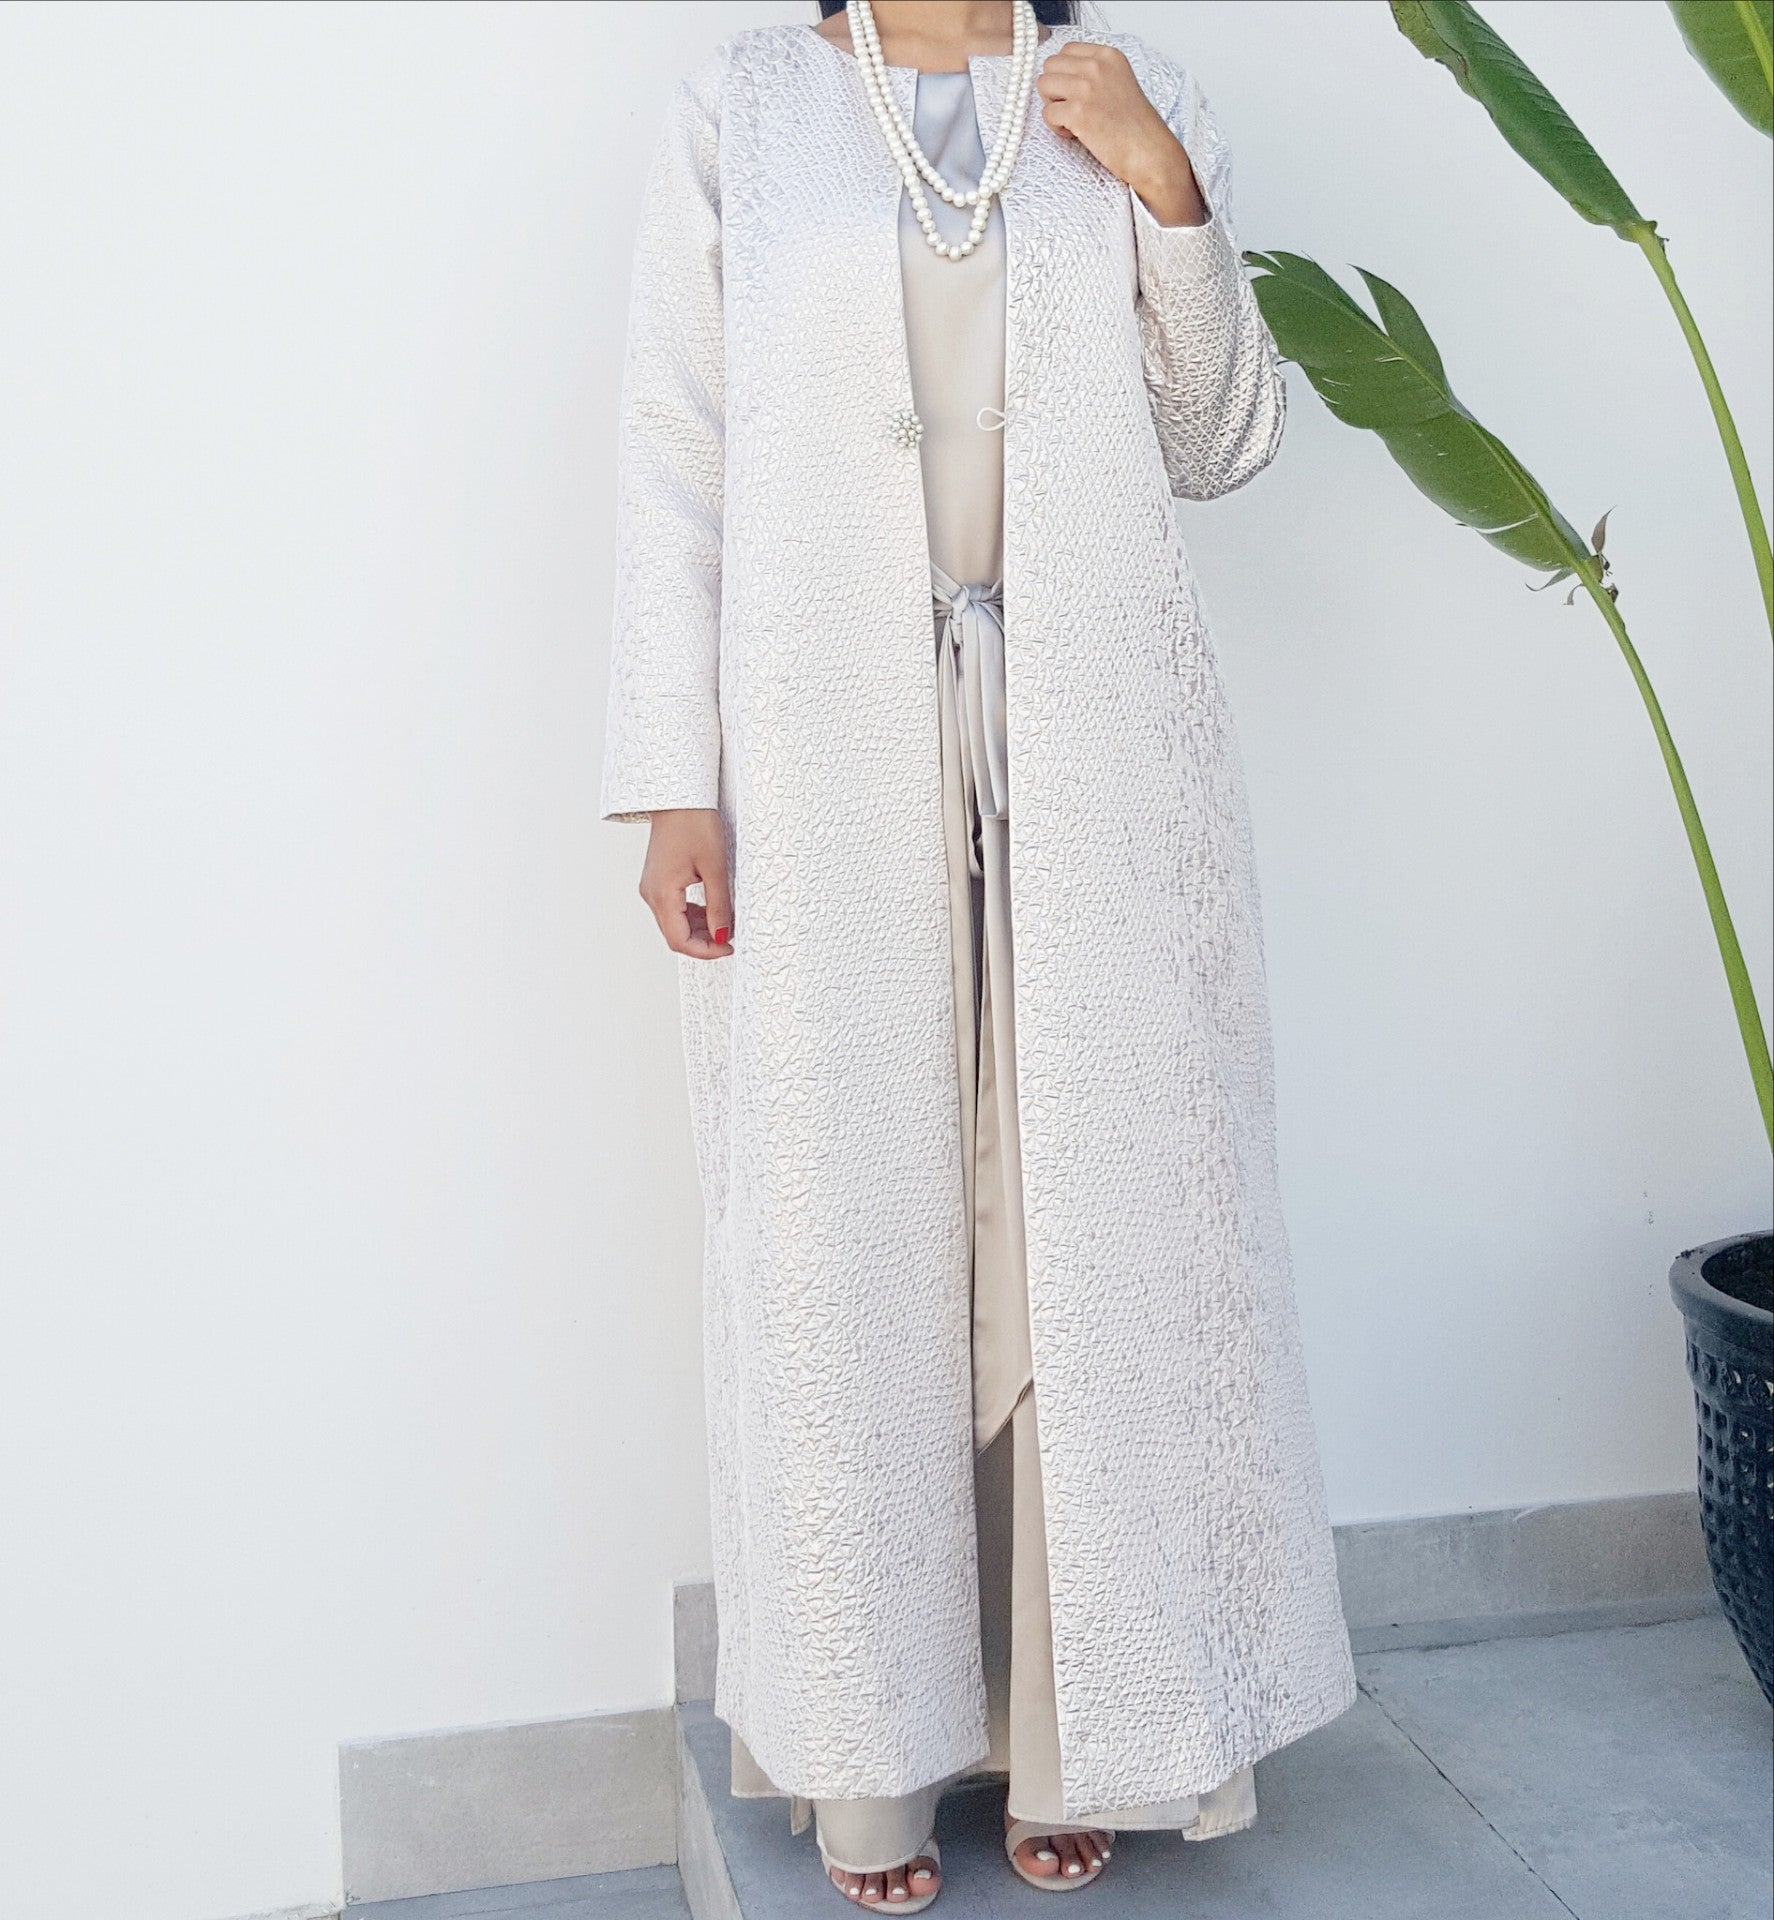 Qabeela SS17  Off White & Matt Silver Jacquard Evening Duster